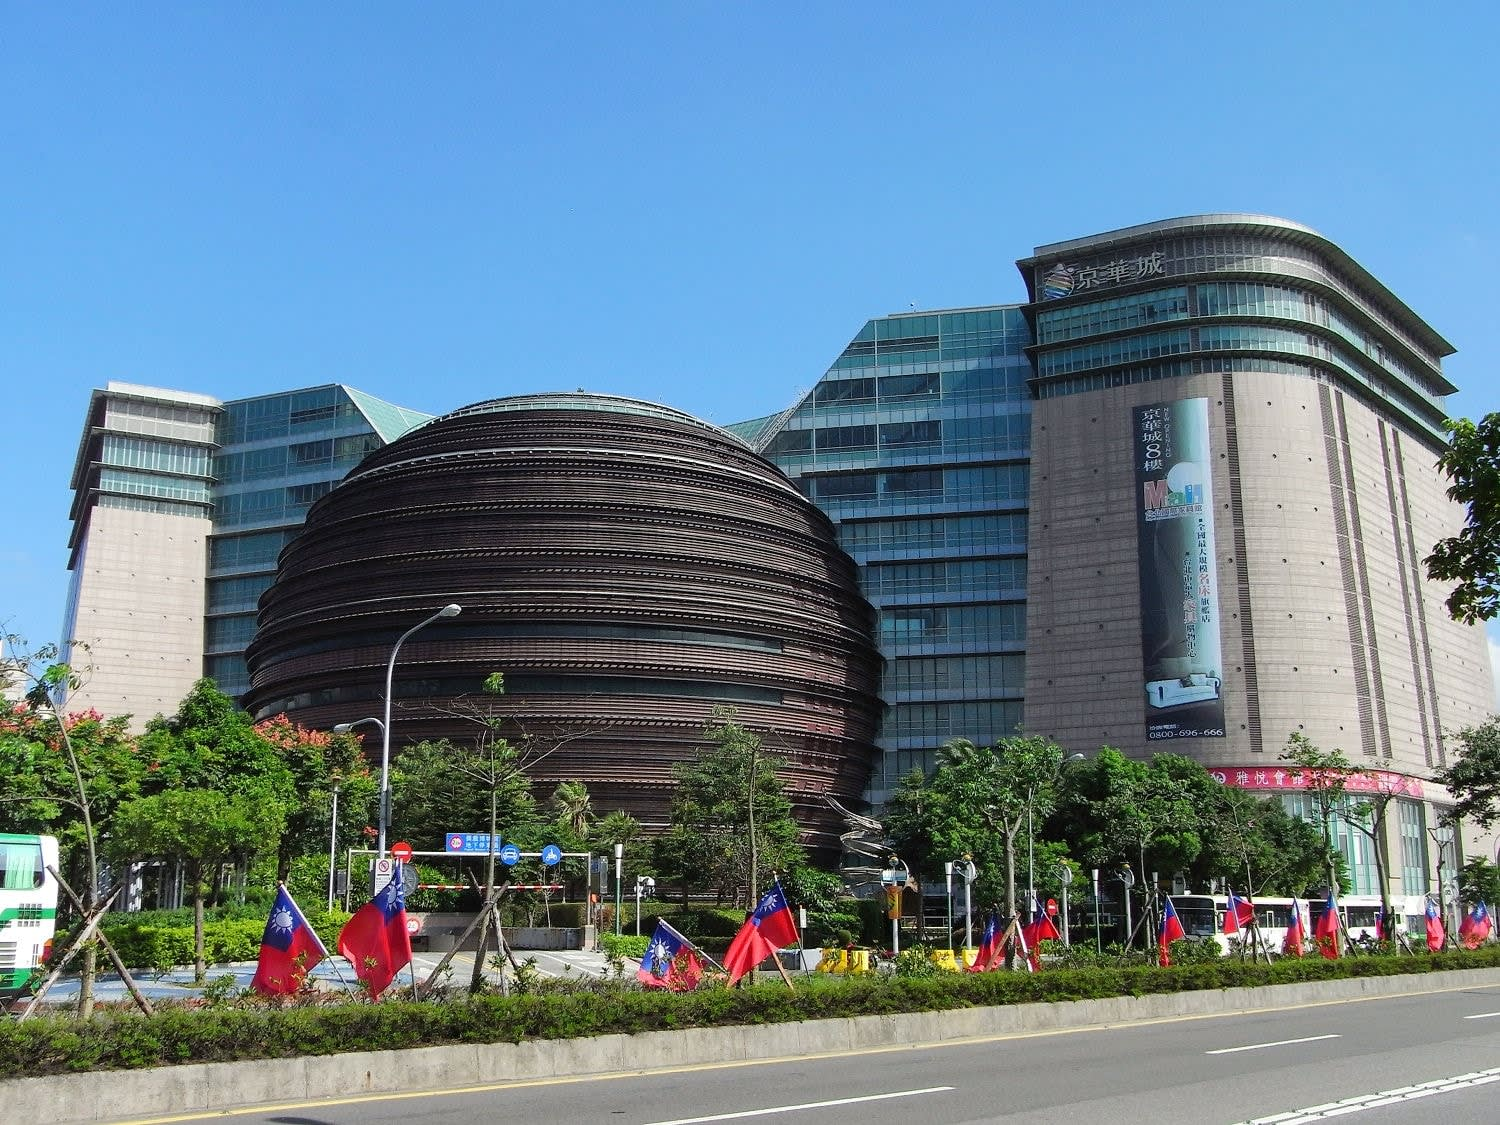 c040e4d352d68 The Core Pacific, also known as the Living Mall, is one of Taipei s most  famous shopping centres. Apart from its unique architectural design, ...